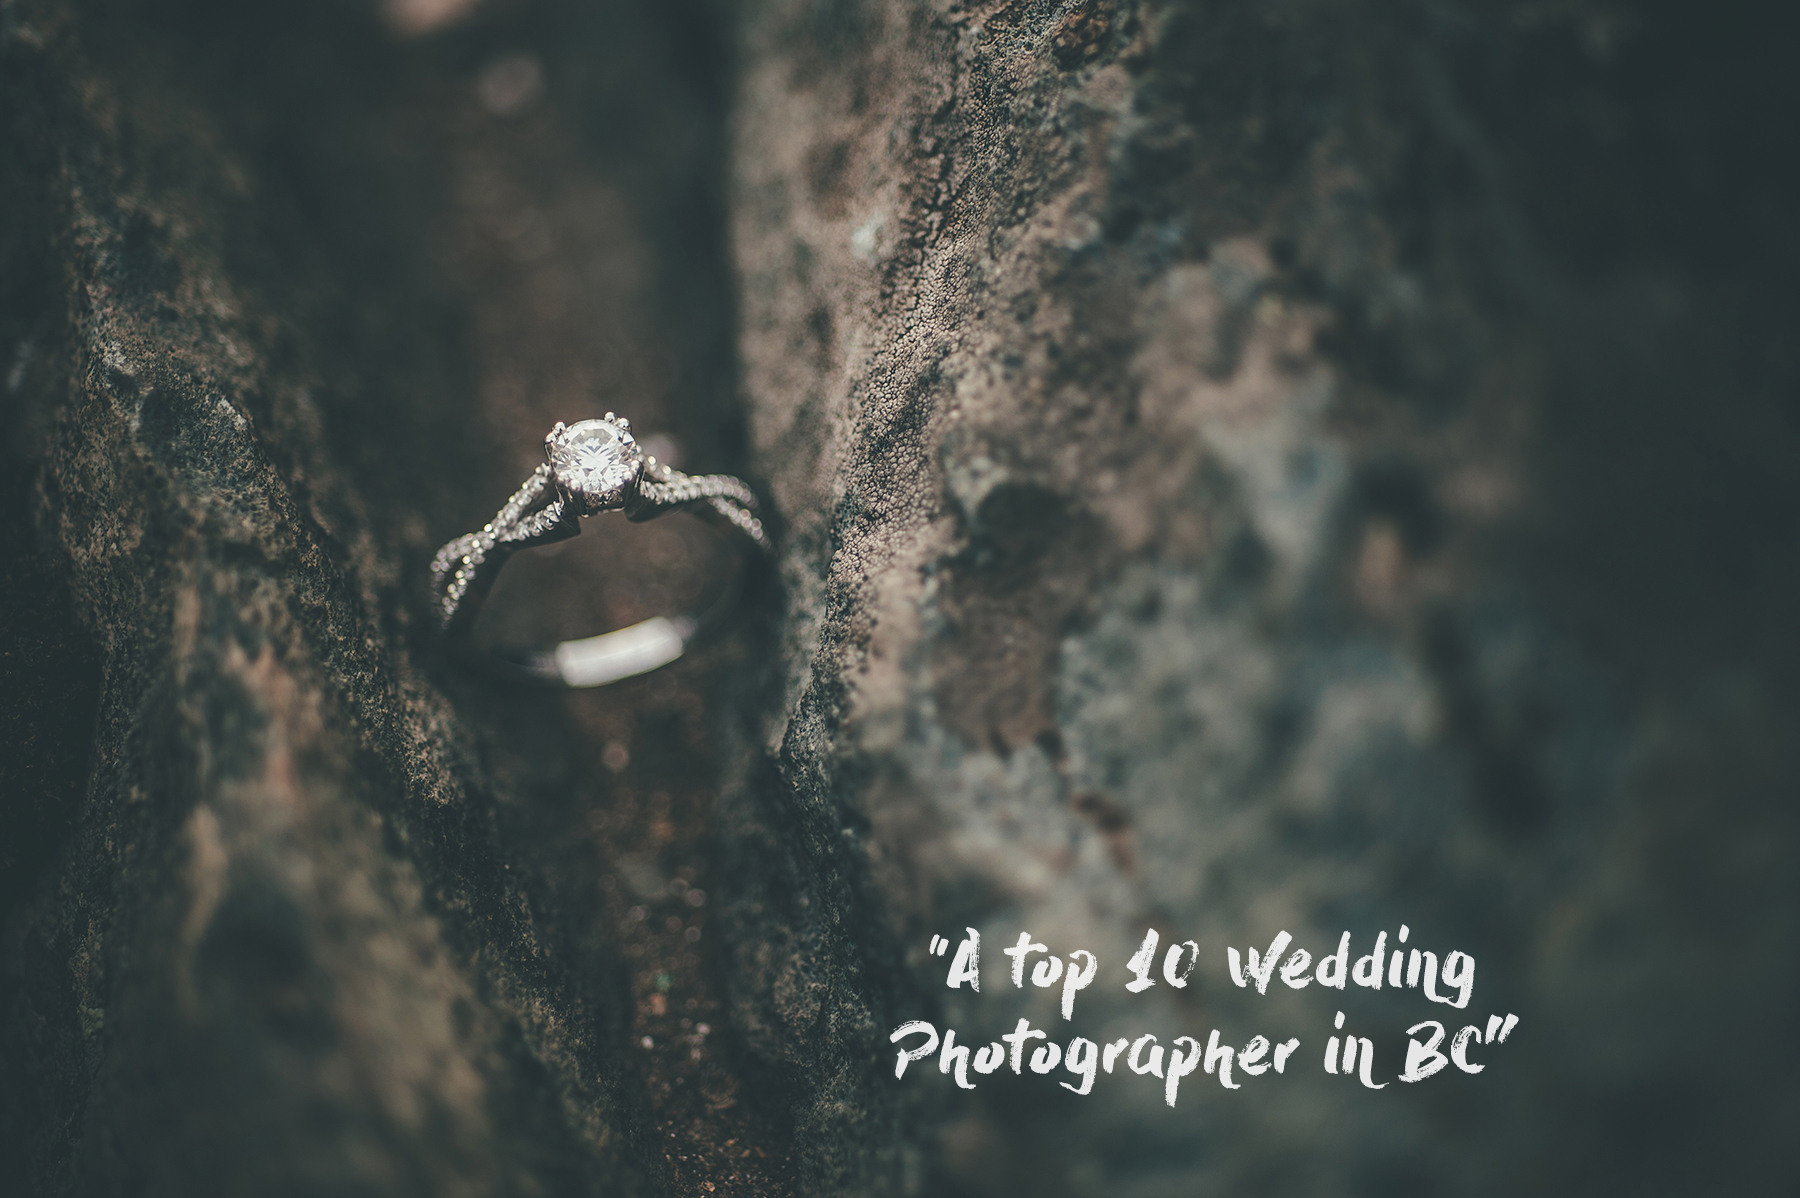 Top 10 Wedding Photographer in British Columbia